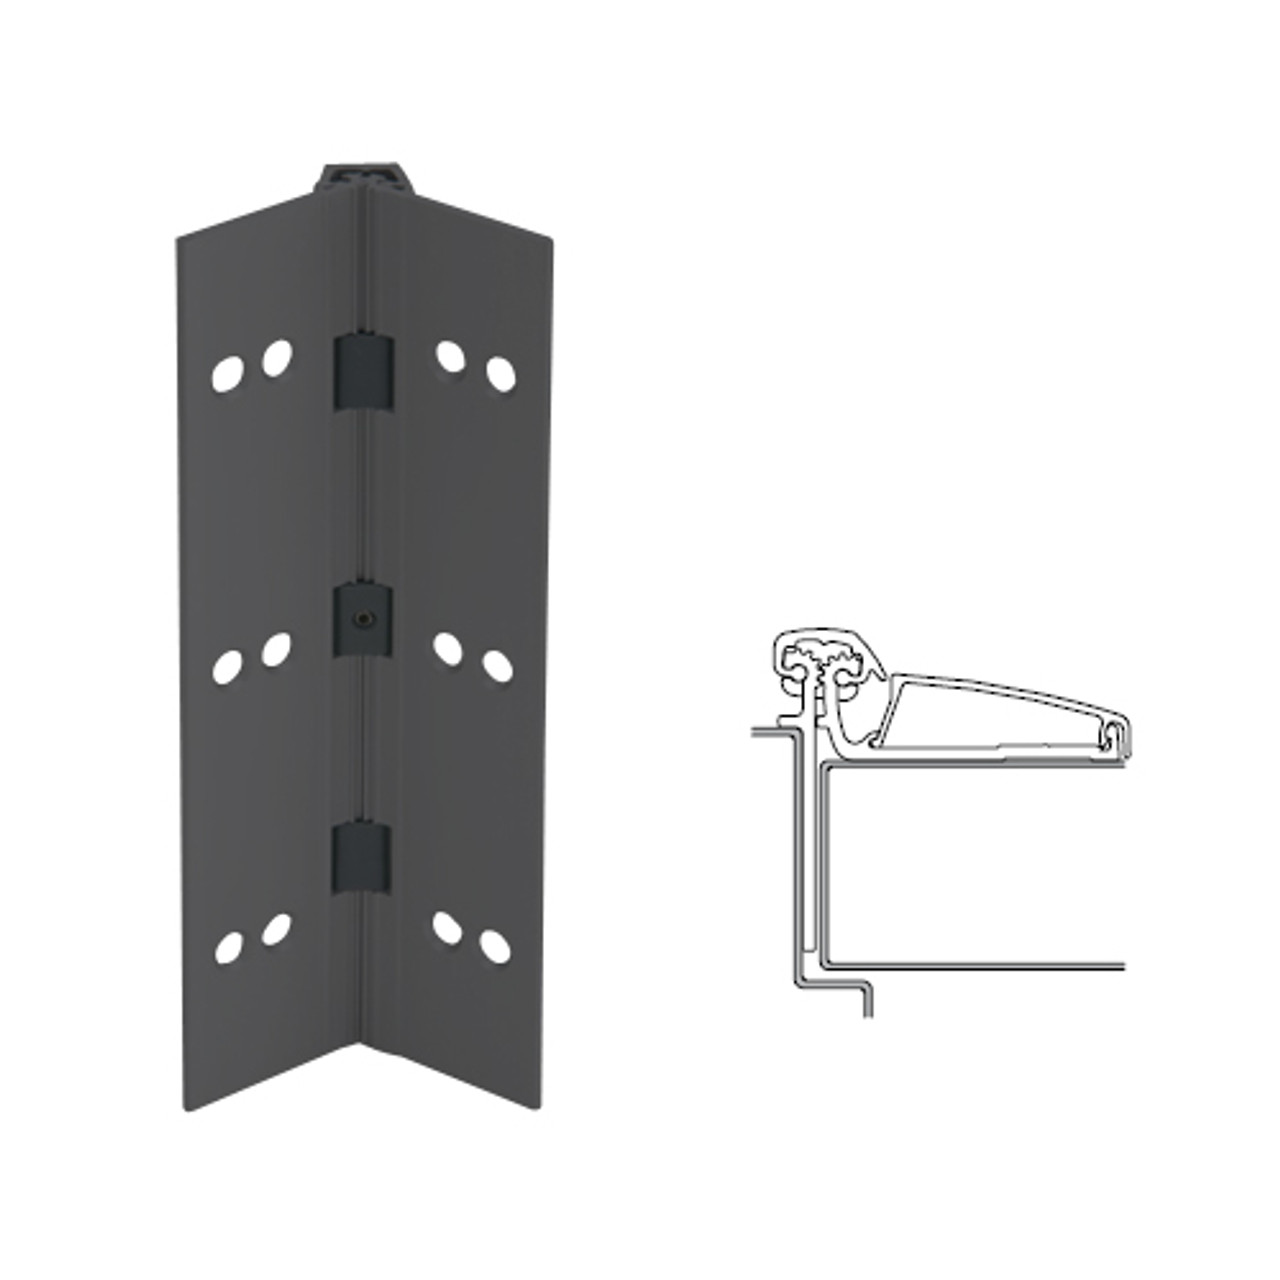 046XY-315AN-120 IVES Adjustable Half Surface Continuous Geared Hinges in Anodized Black